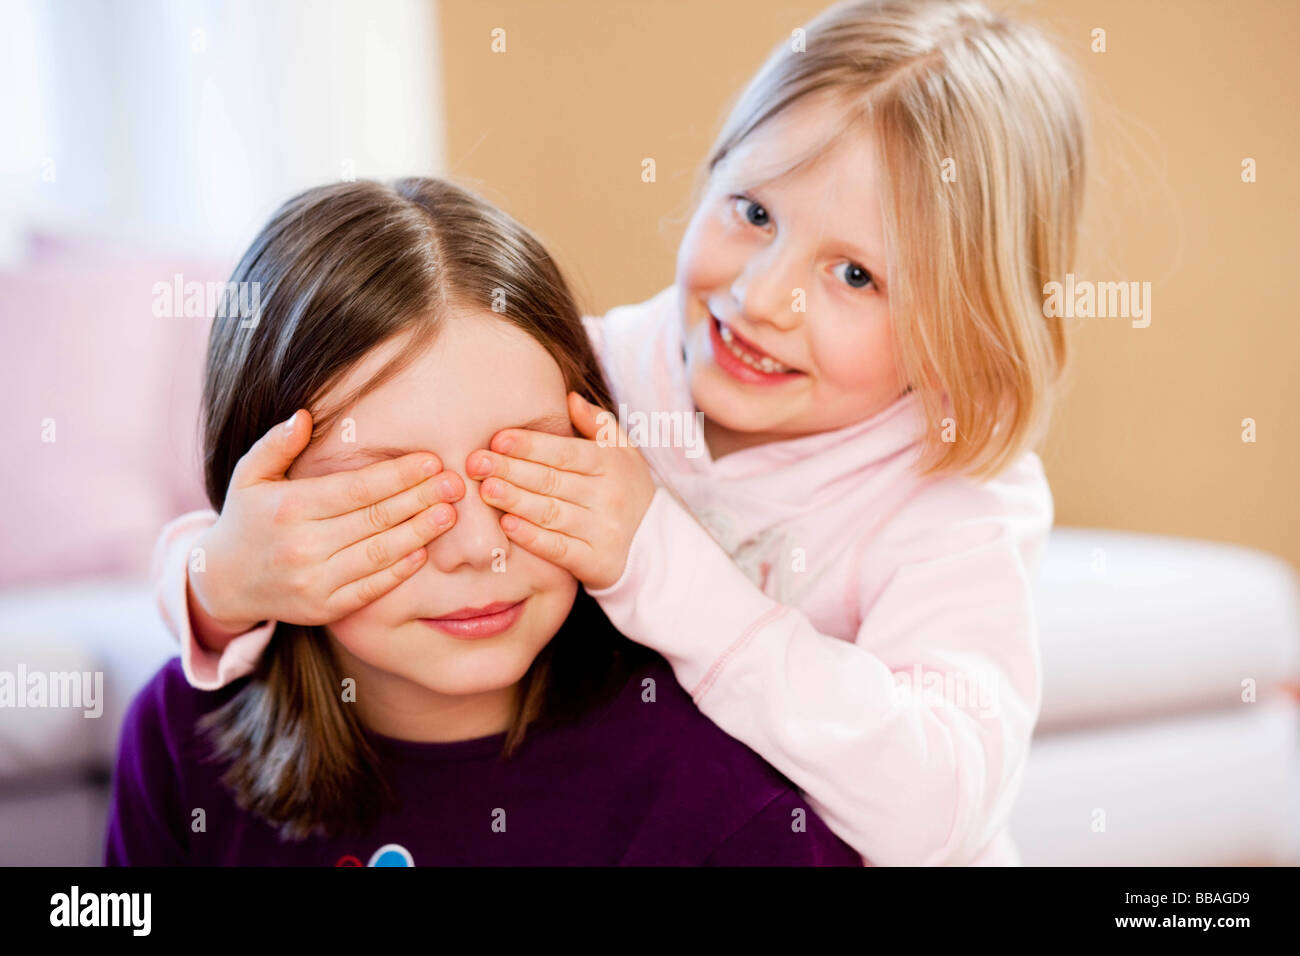 young sisters playing - Stock Image